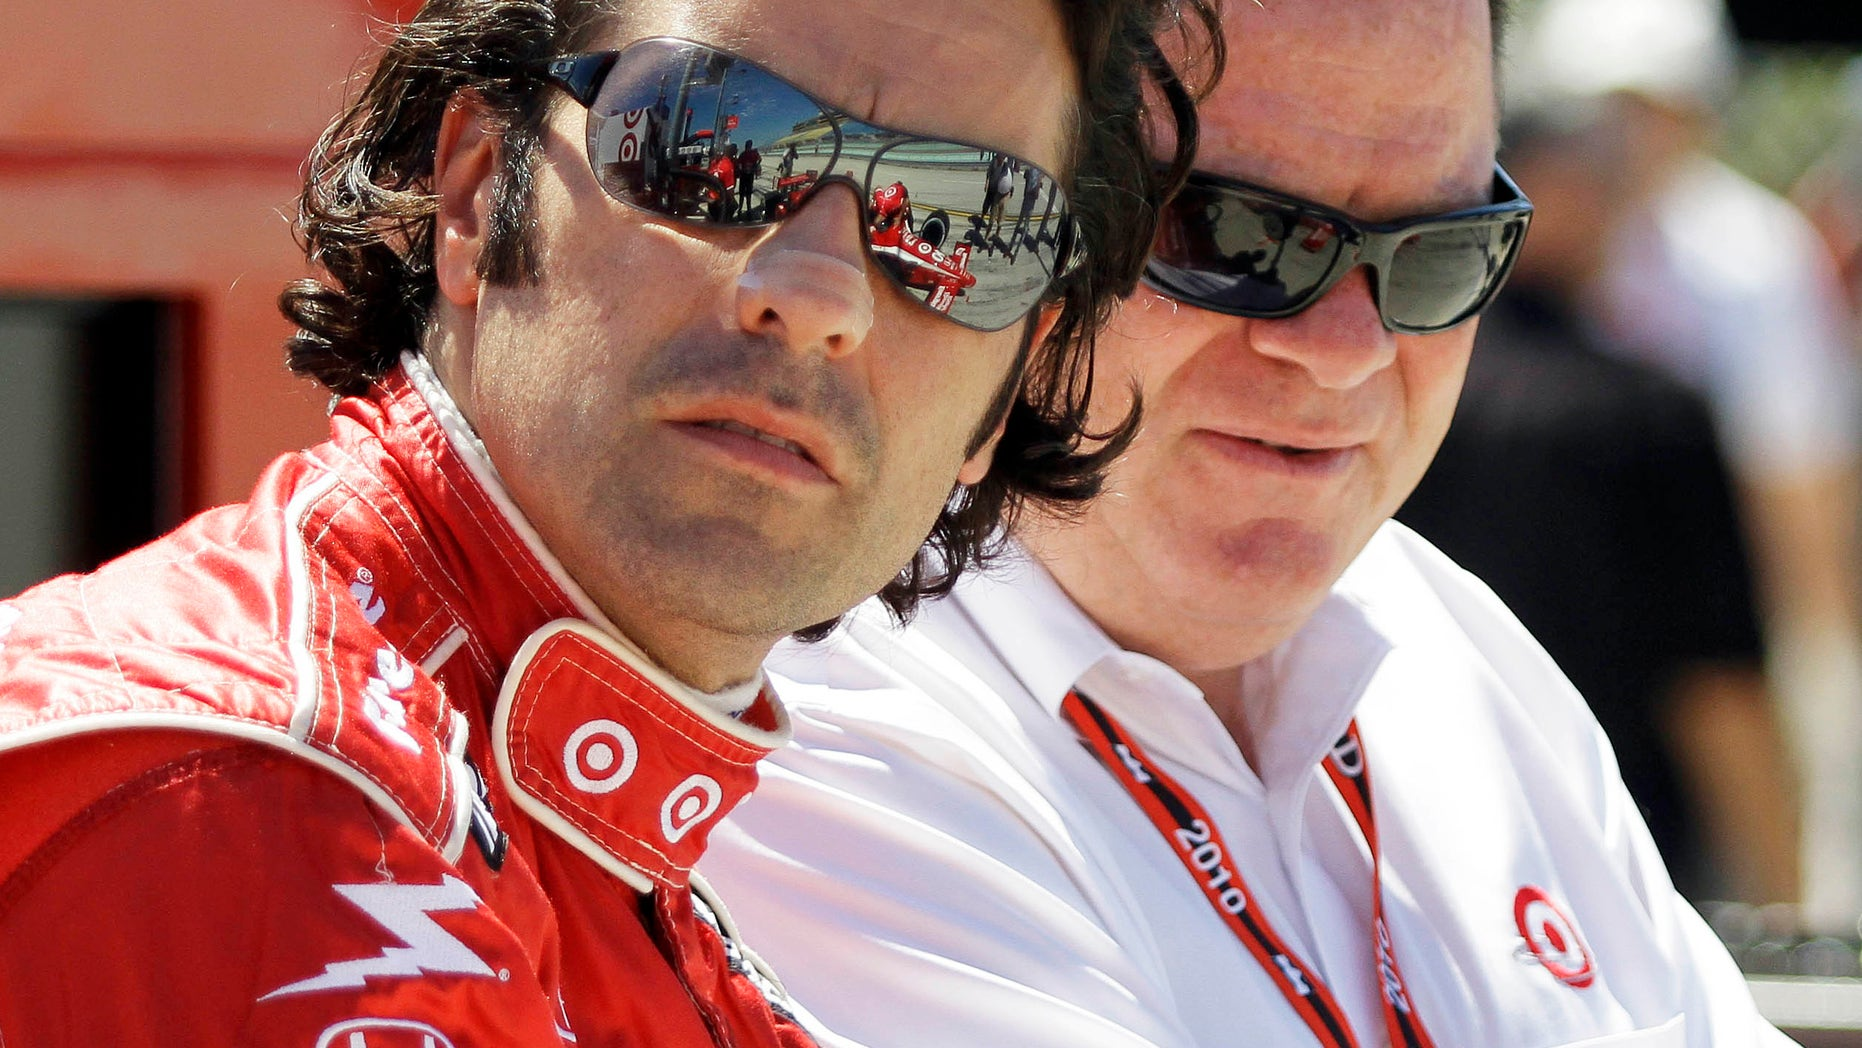 FILE - In this Oct. 1, 2010, file photo, IndyCar driver Dario Franchitti, left and team owner Chip Ganassi talk before practice for the IRL Indy 300 auto race at Homestead-Miami Speedway in Homestead, Fla. When Franchitti made a rare call from Scotland to his boss, Chip Ganassi knew immediately something was wrong. He could hear the heartbreak over the line. Franchitti then delivered the news: Doctors had told him it was time to quit.  (AP Photo/Terry Renna, File)